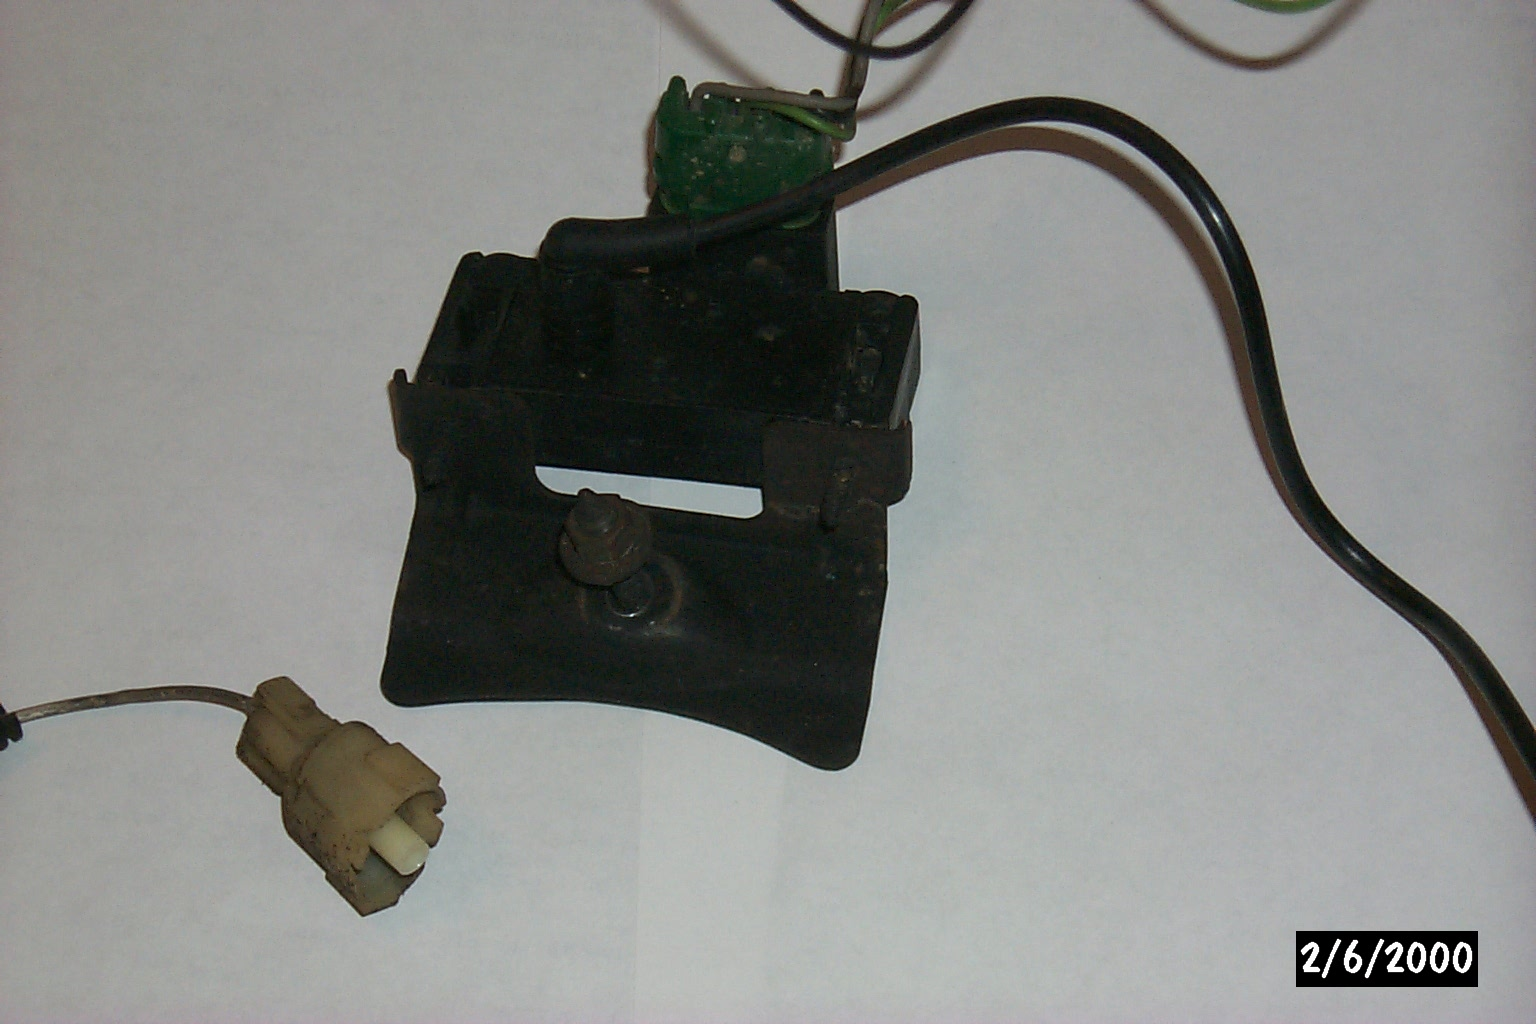 Map And Knkplug on 2000 Gmc Sierra Wiring Diagram